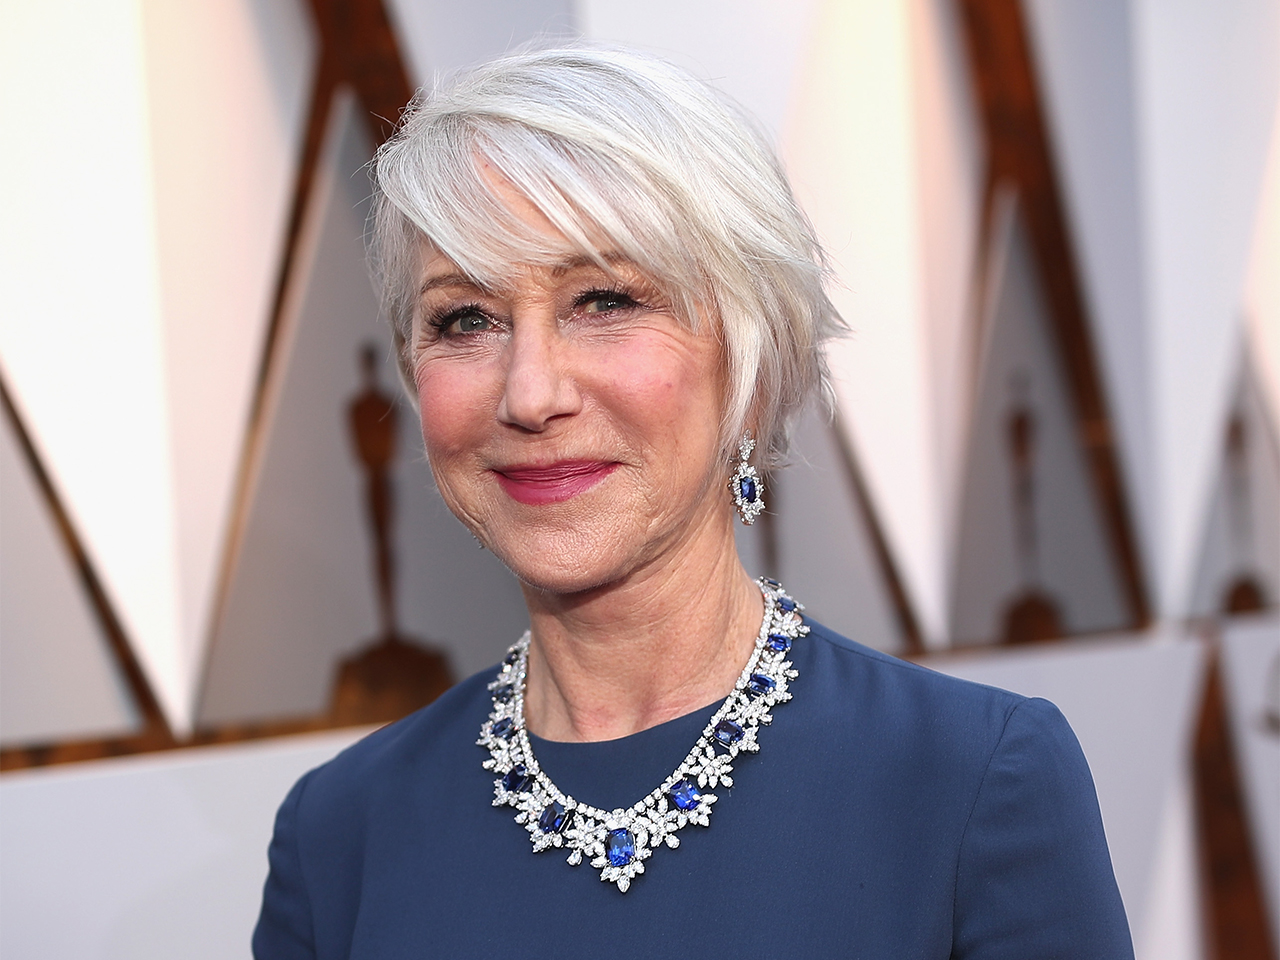 'Don't Be So Up Your Own Bum': Helen Mirren On Insecurity, 'Anti-Aging,' And Meghan Markle ...